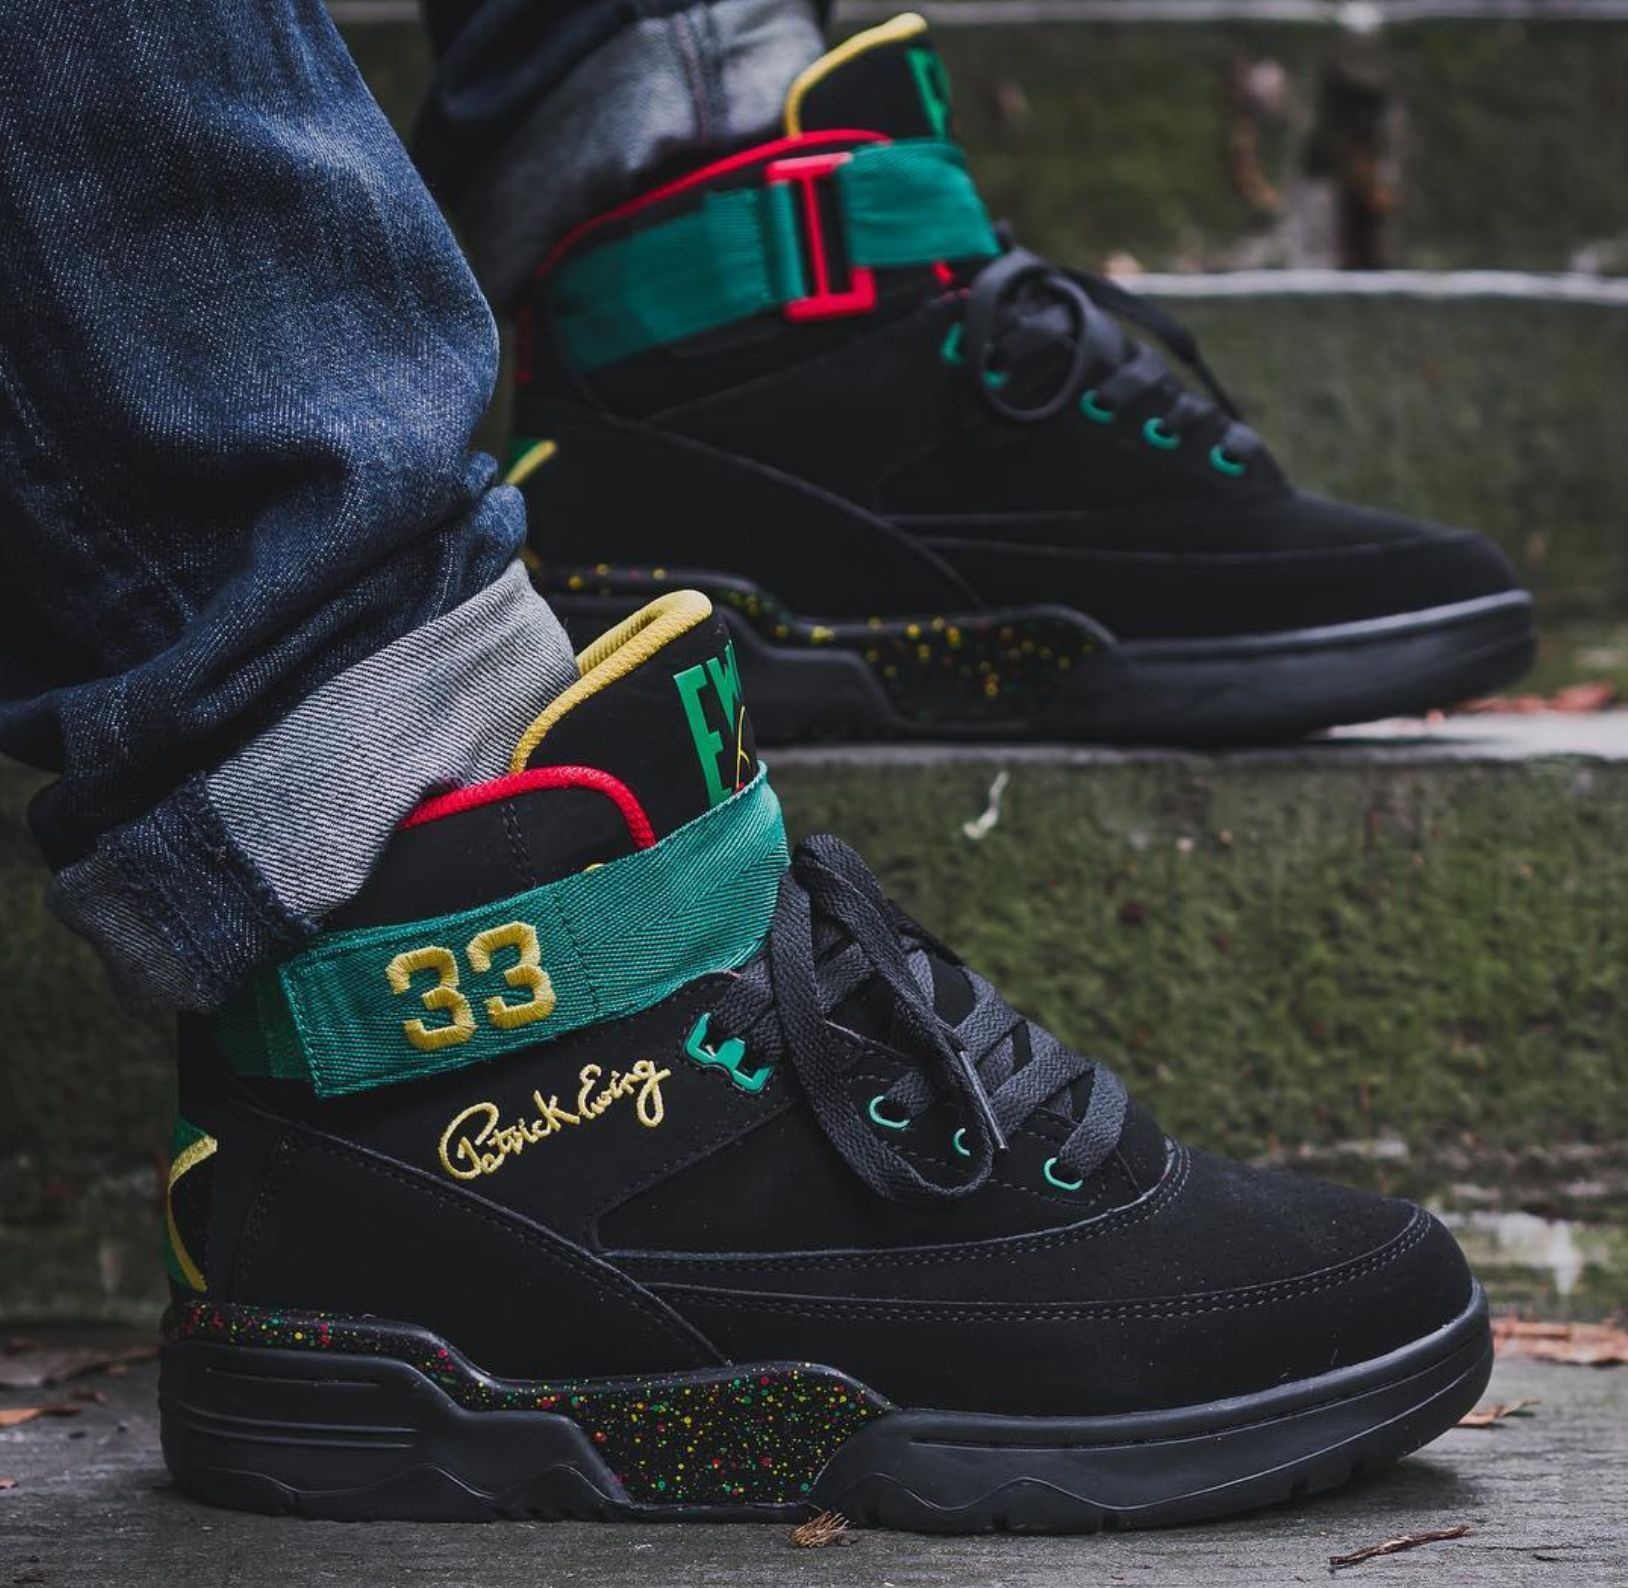 97fc6a3ab3a0 Available Now Ewing 33 Mid Jamaica 1EW90183-041